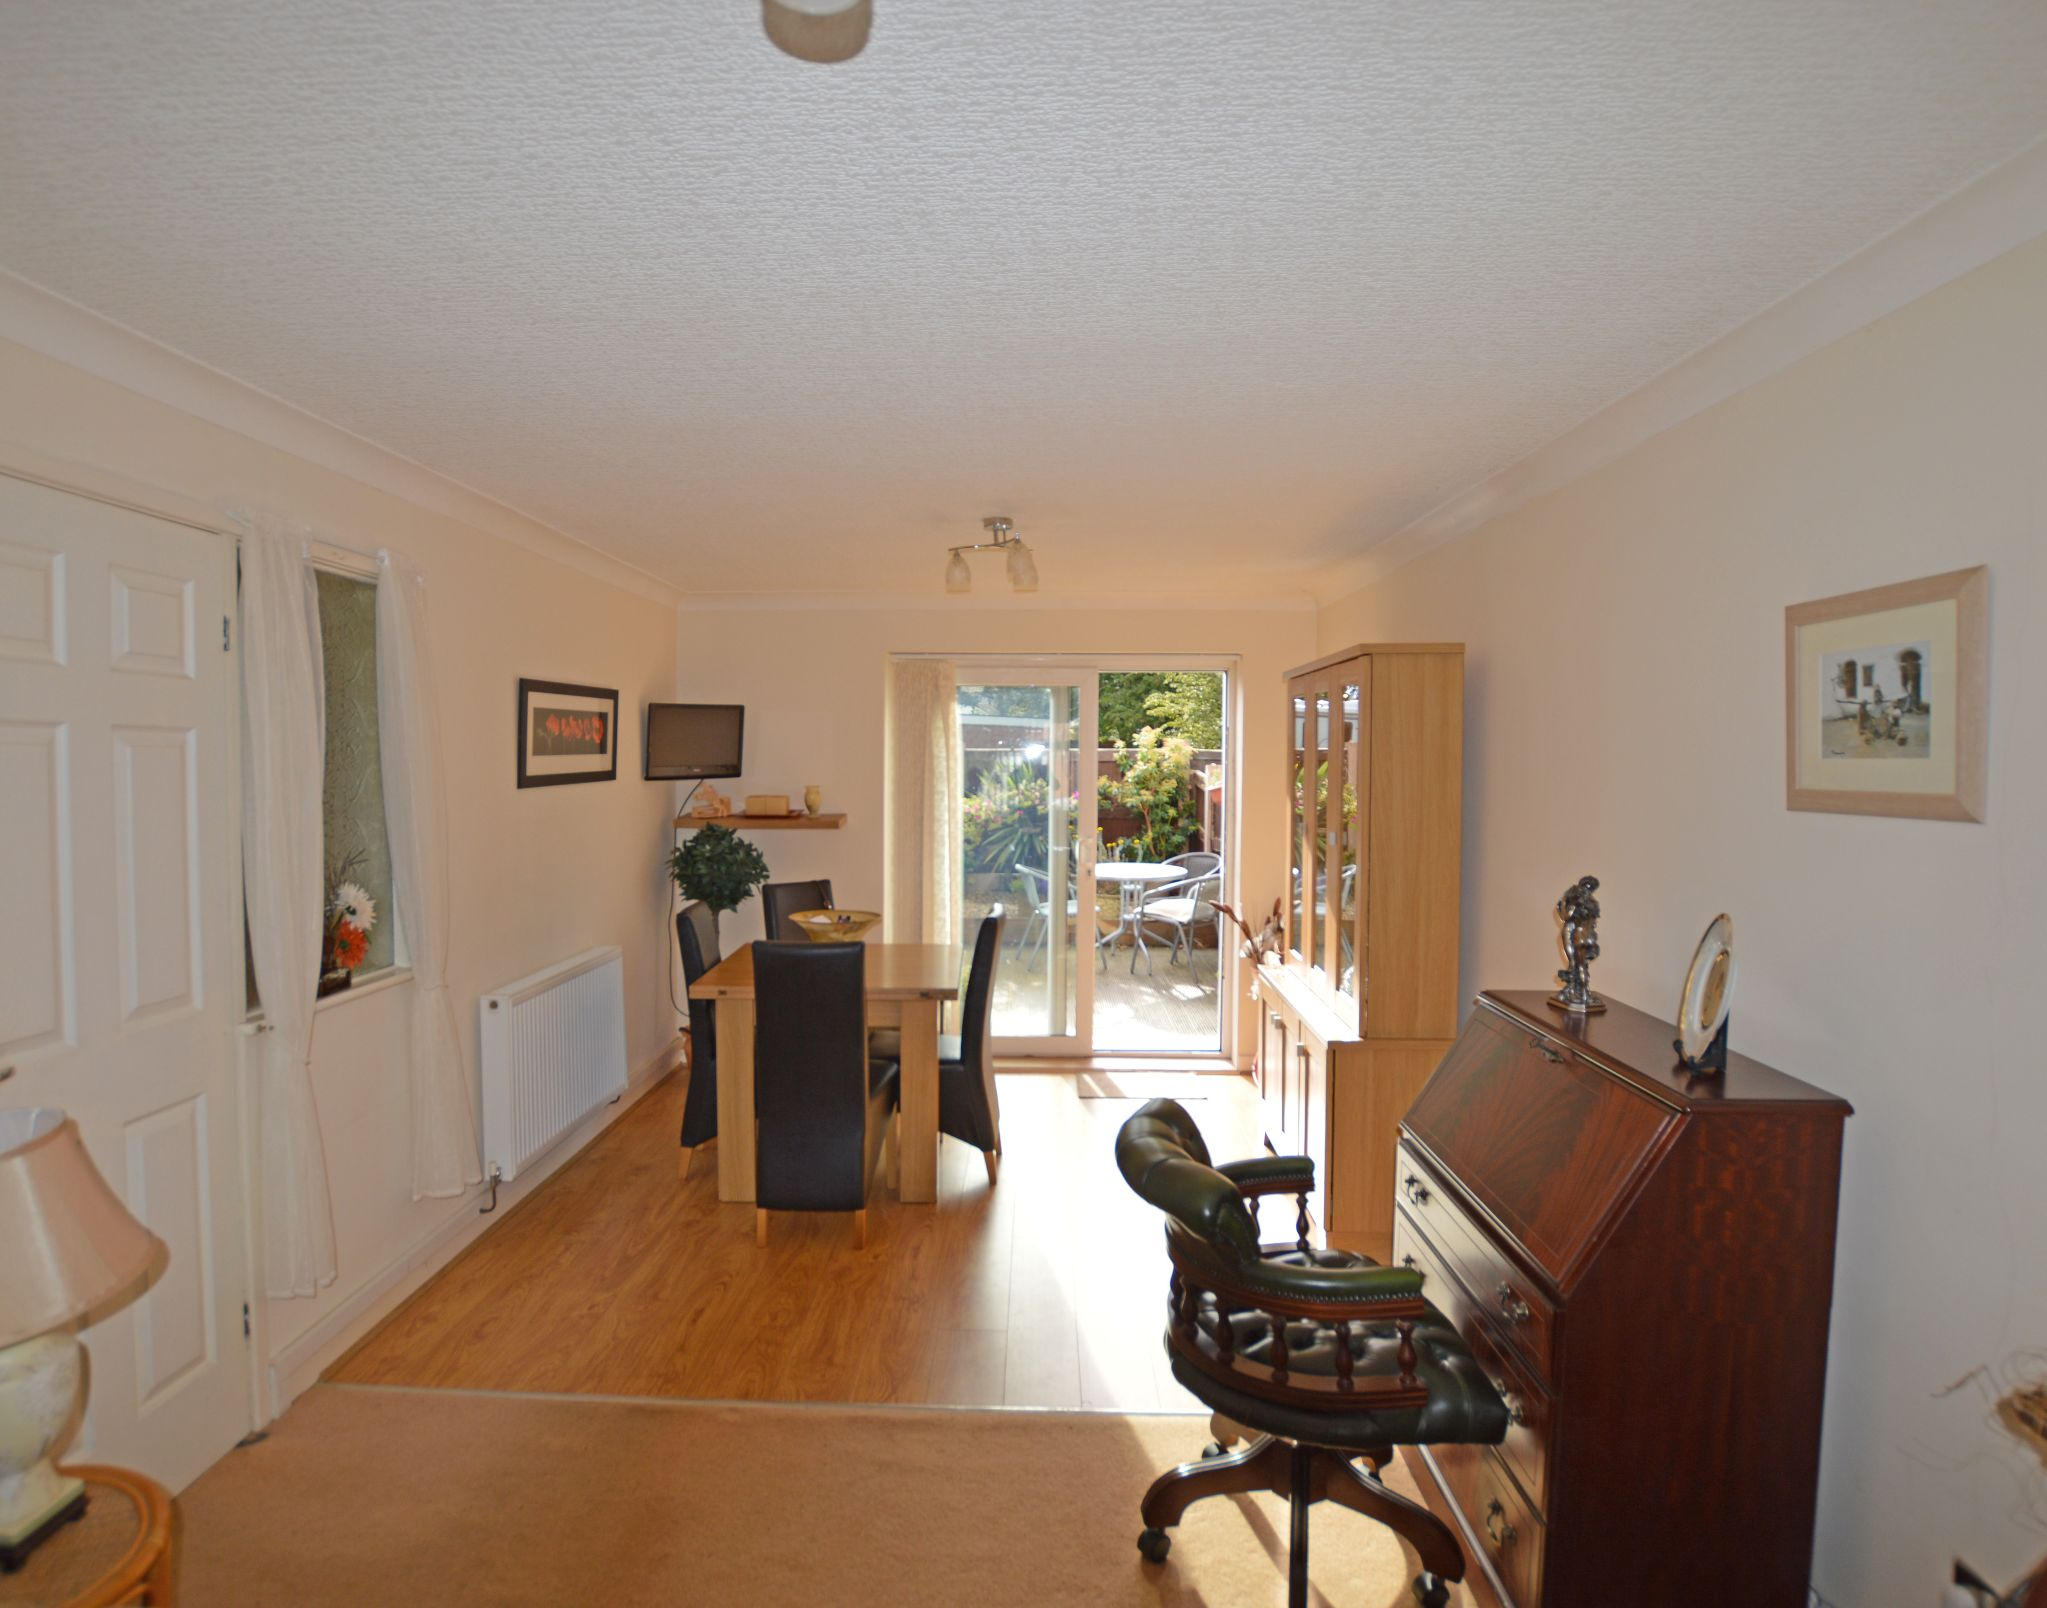 1 bedroom maisonette flat/apartment Under Offer in Abergele - Lounge View 3